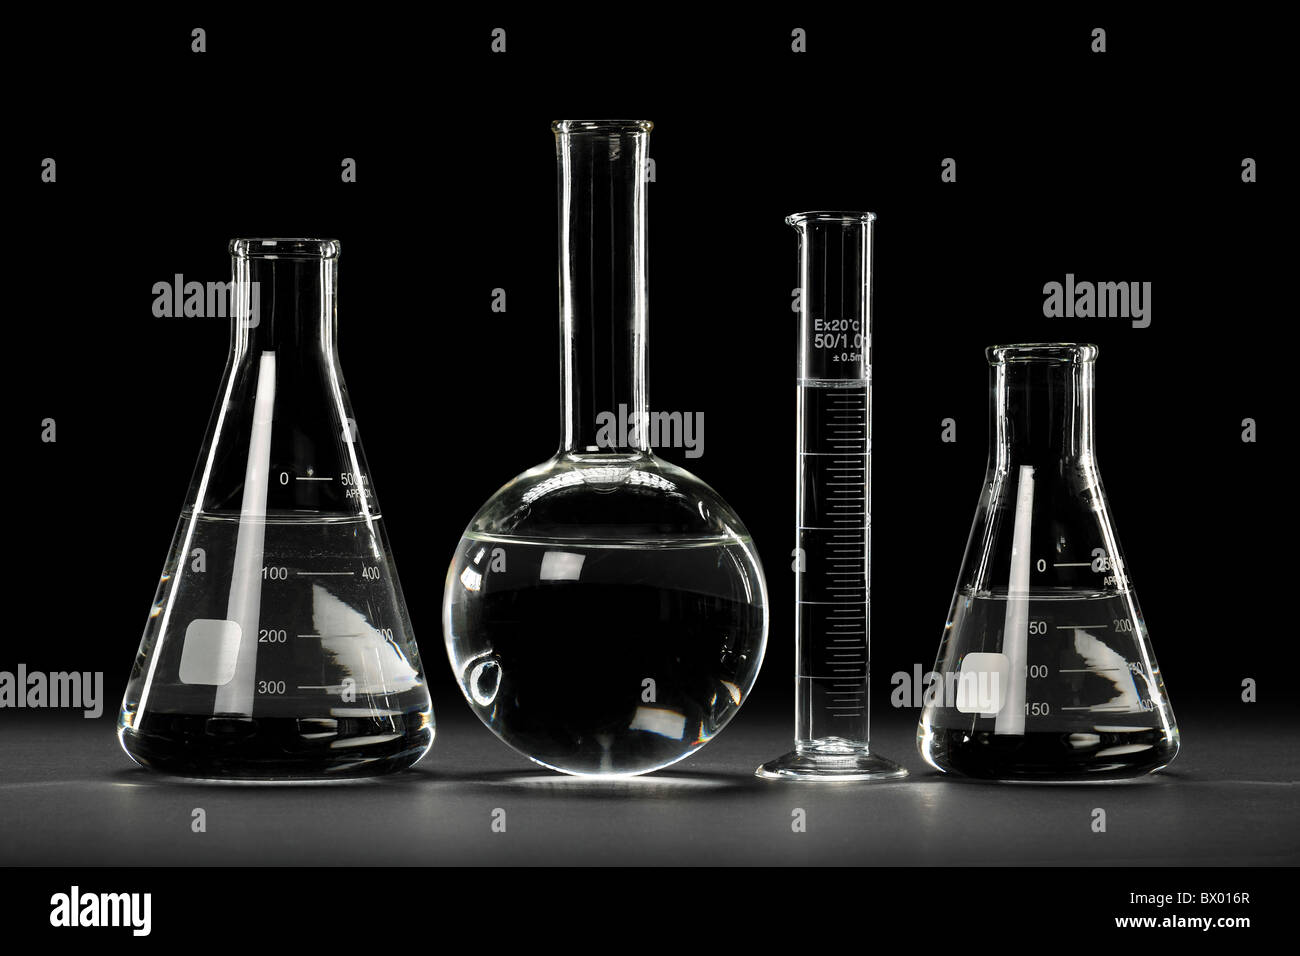 Chemistry Laboratory Test Tube Flask Stock Photos Amp Chemistry Laboratory Test Tube Flask Stock